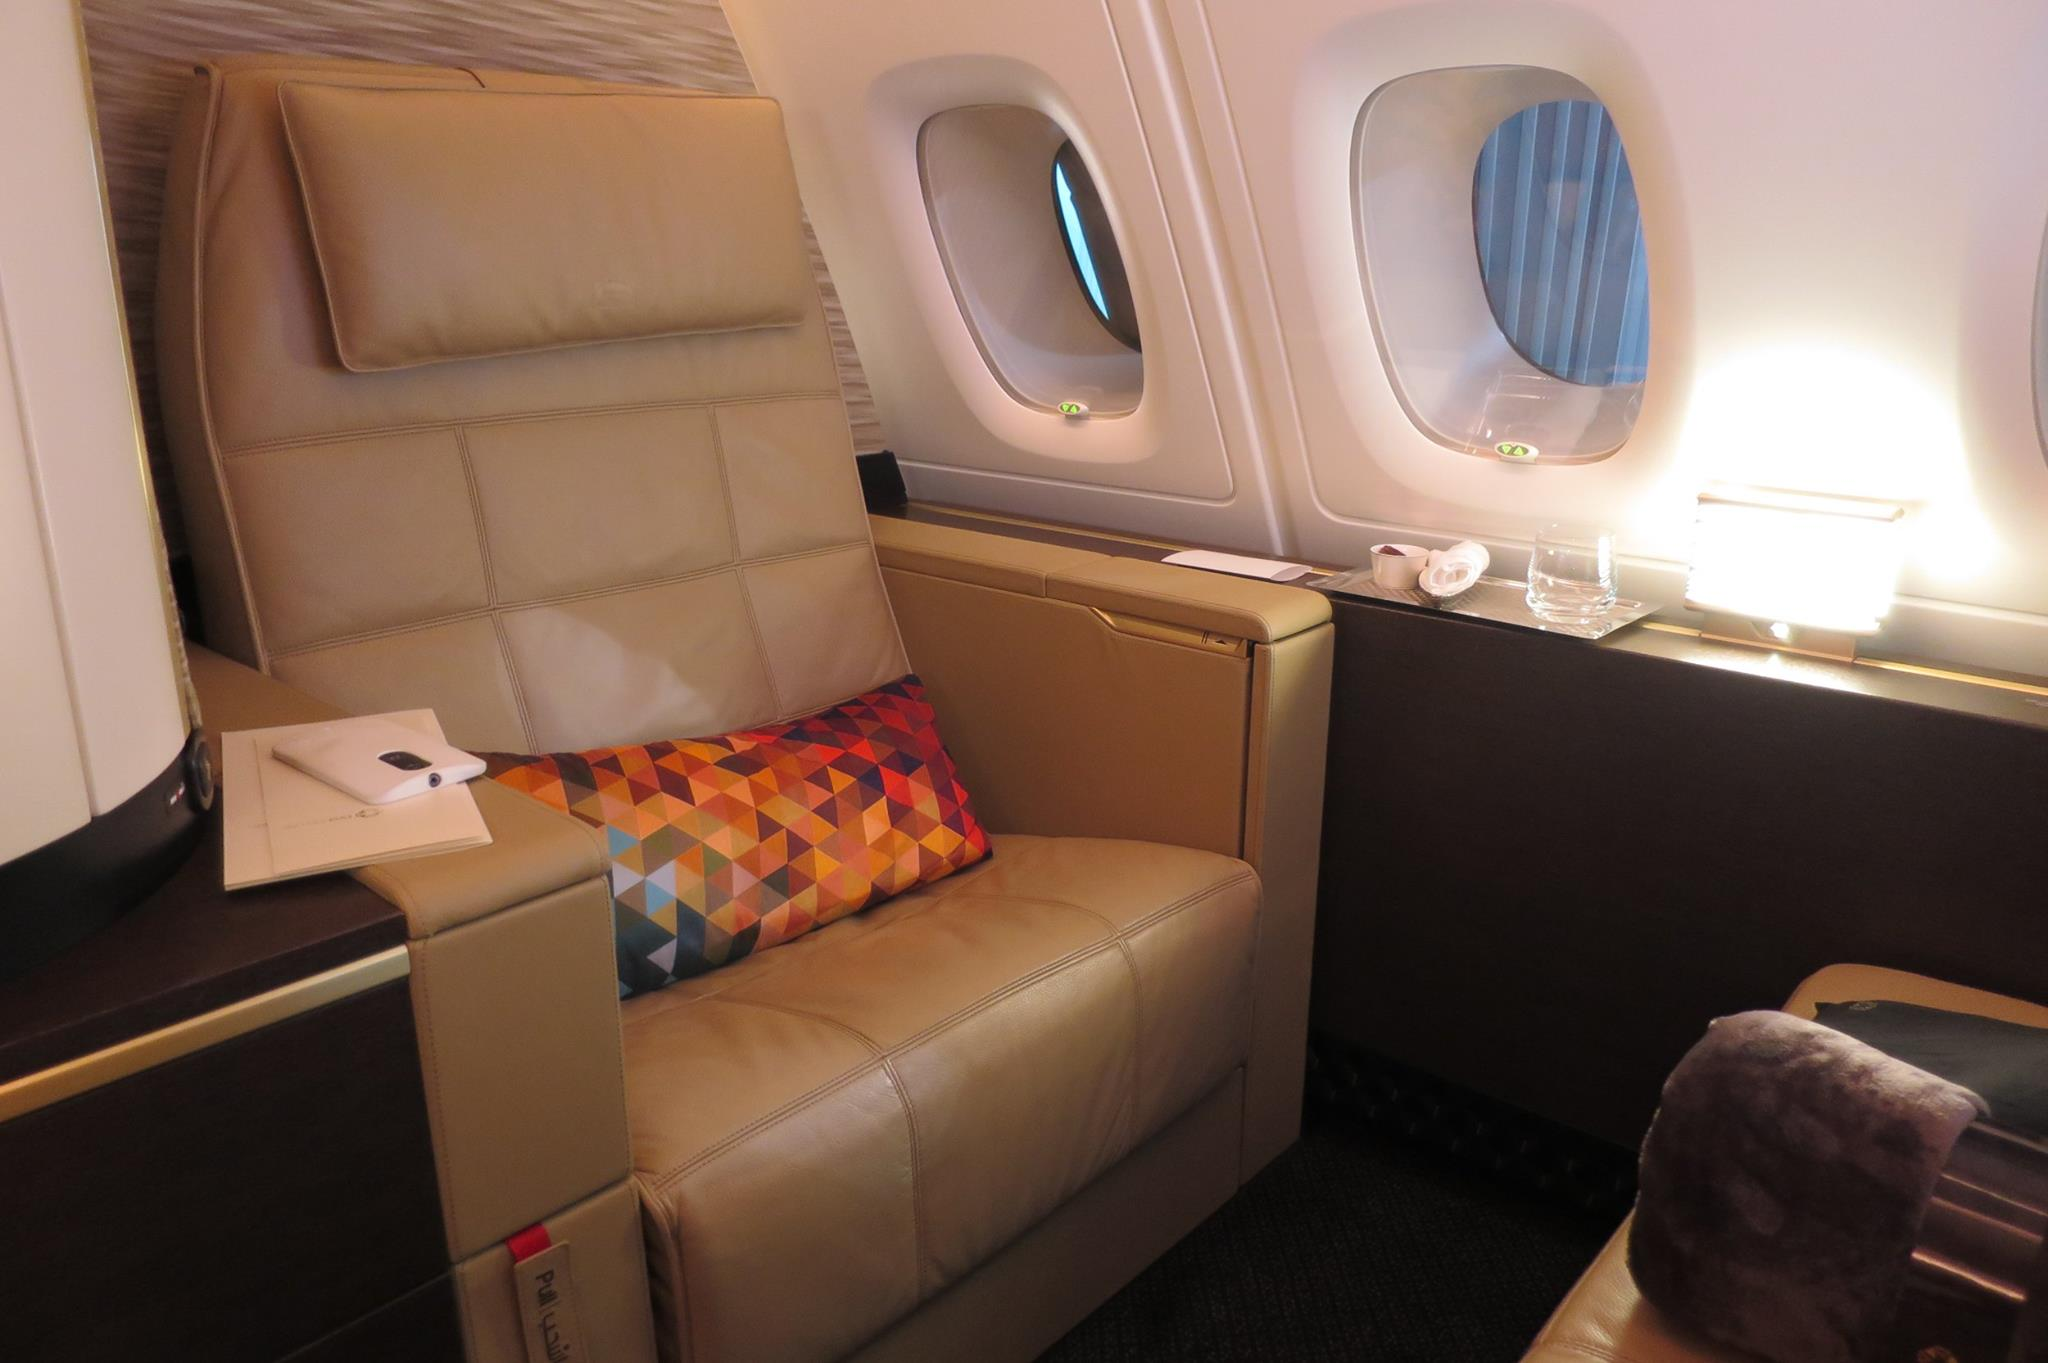 Like the Lufthansa First Class that is being phased out, it has a separate seat and bed